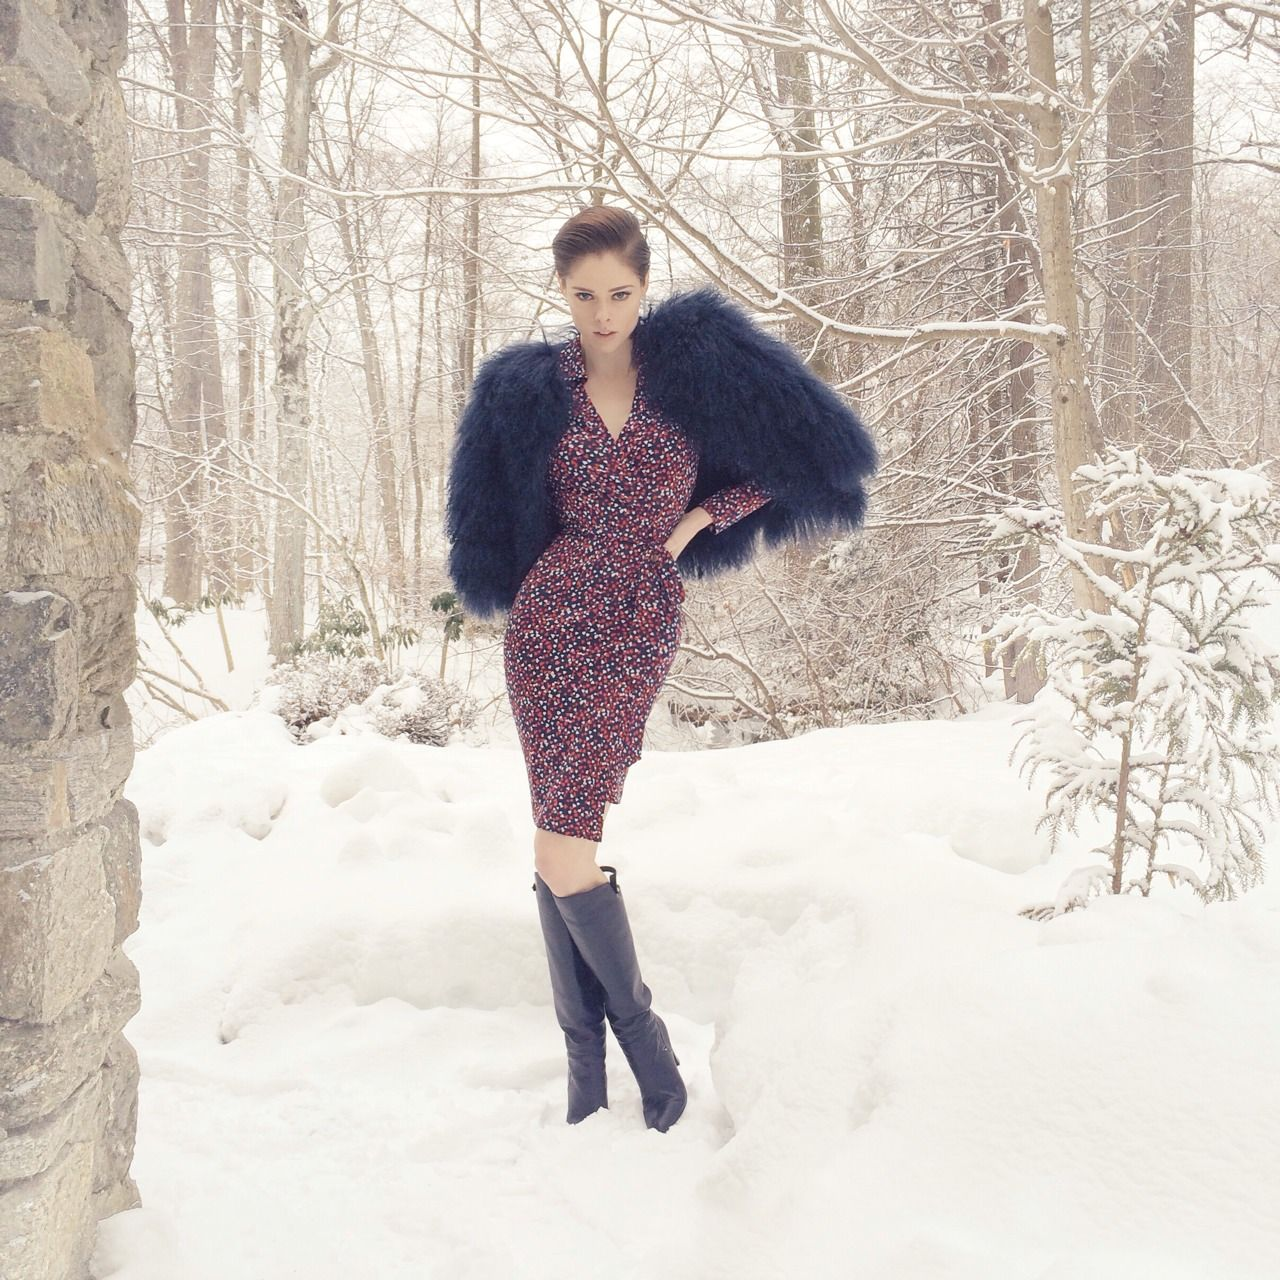 #SoDVF wrapdress on #CocoRocha http://oh-so-coco.tumblr.com/post/77078863623/just-landed-back-in-new-york-where-my-dvf